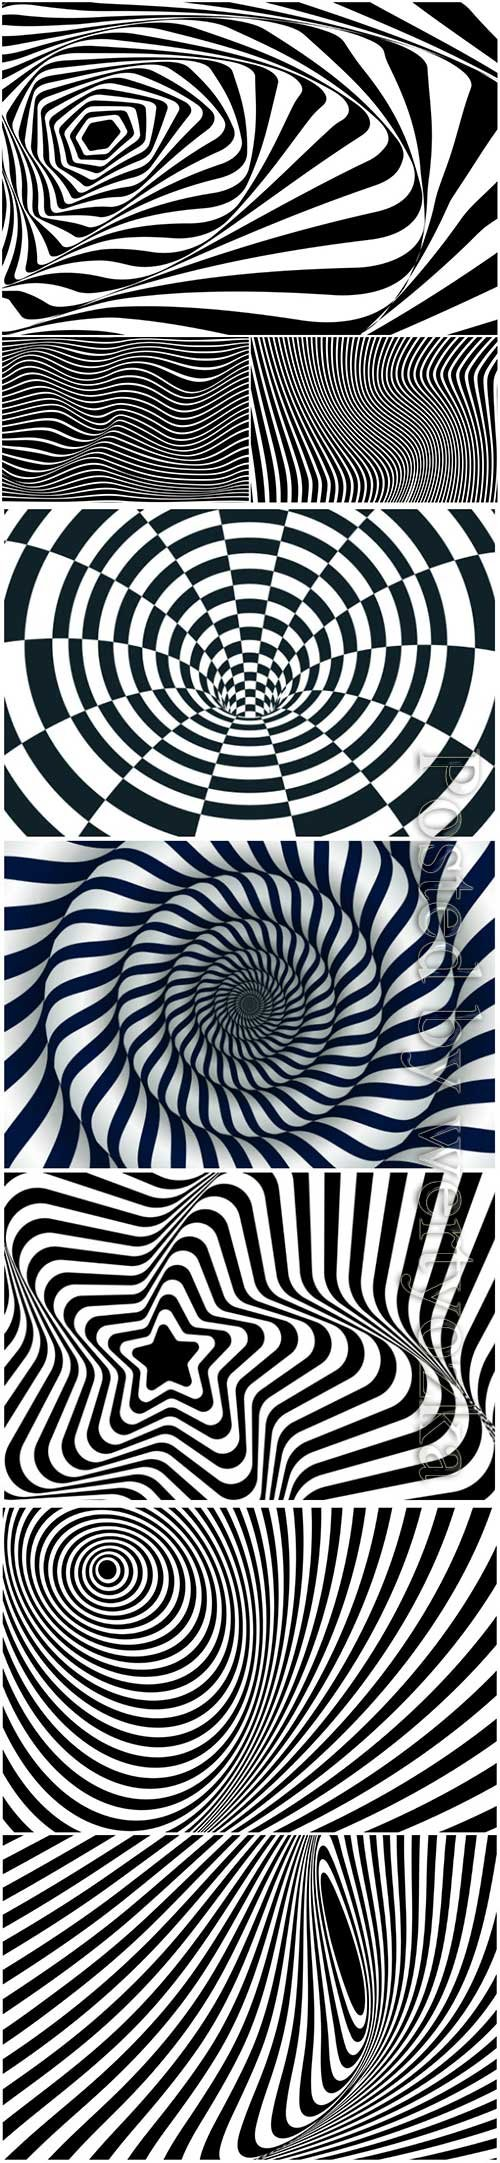 Psychedelic optical illusion vector background # 6